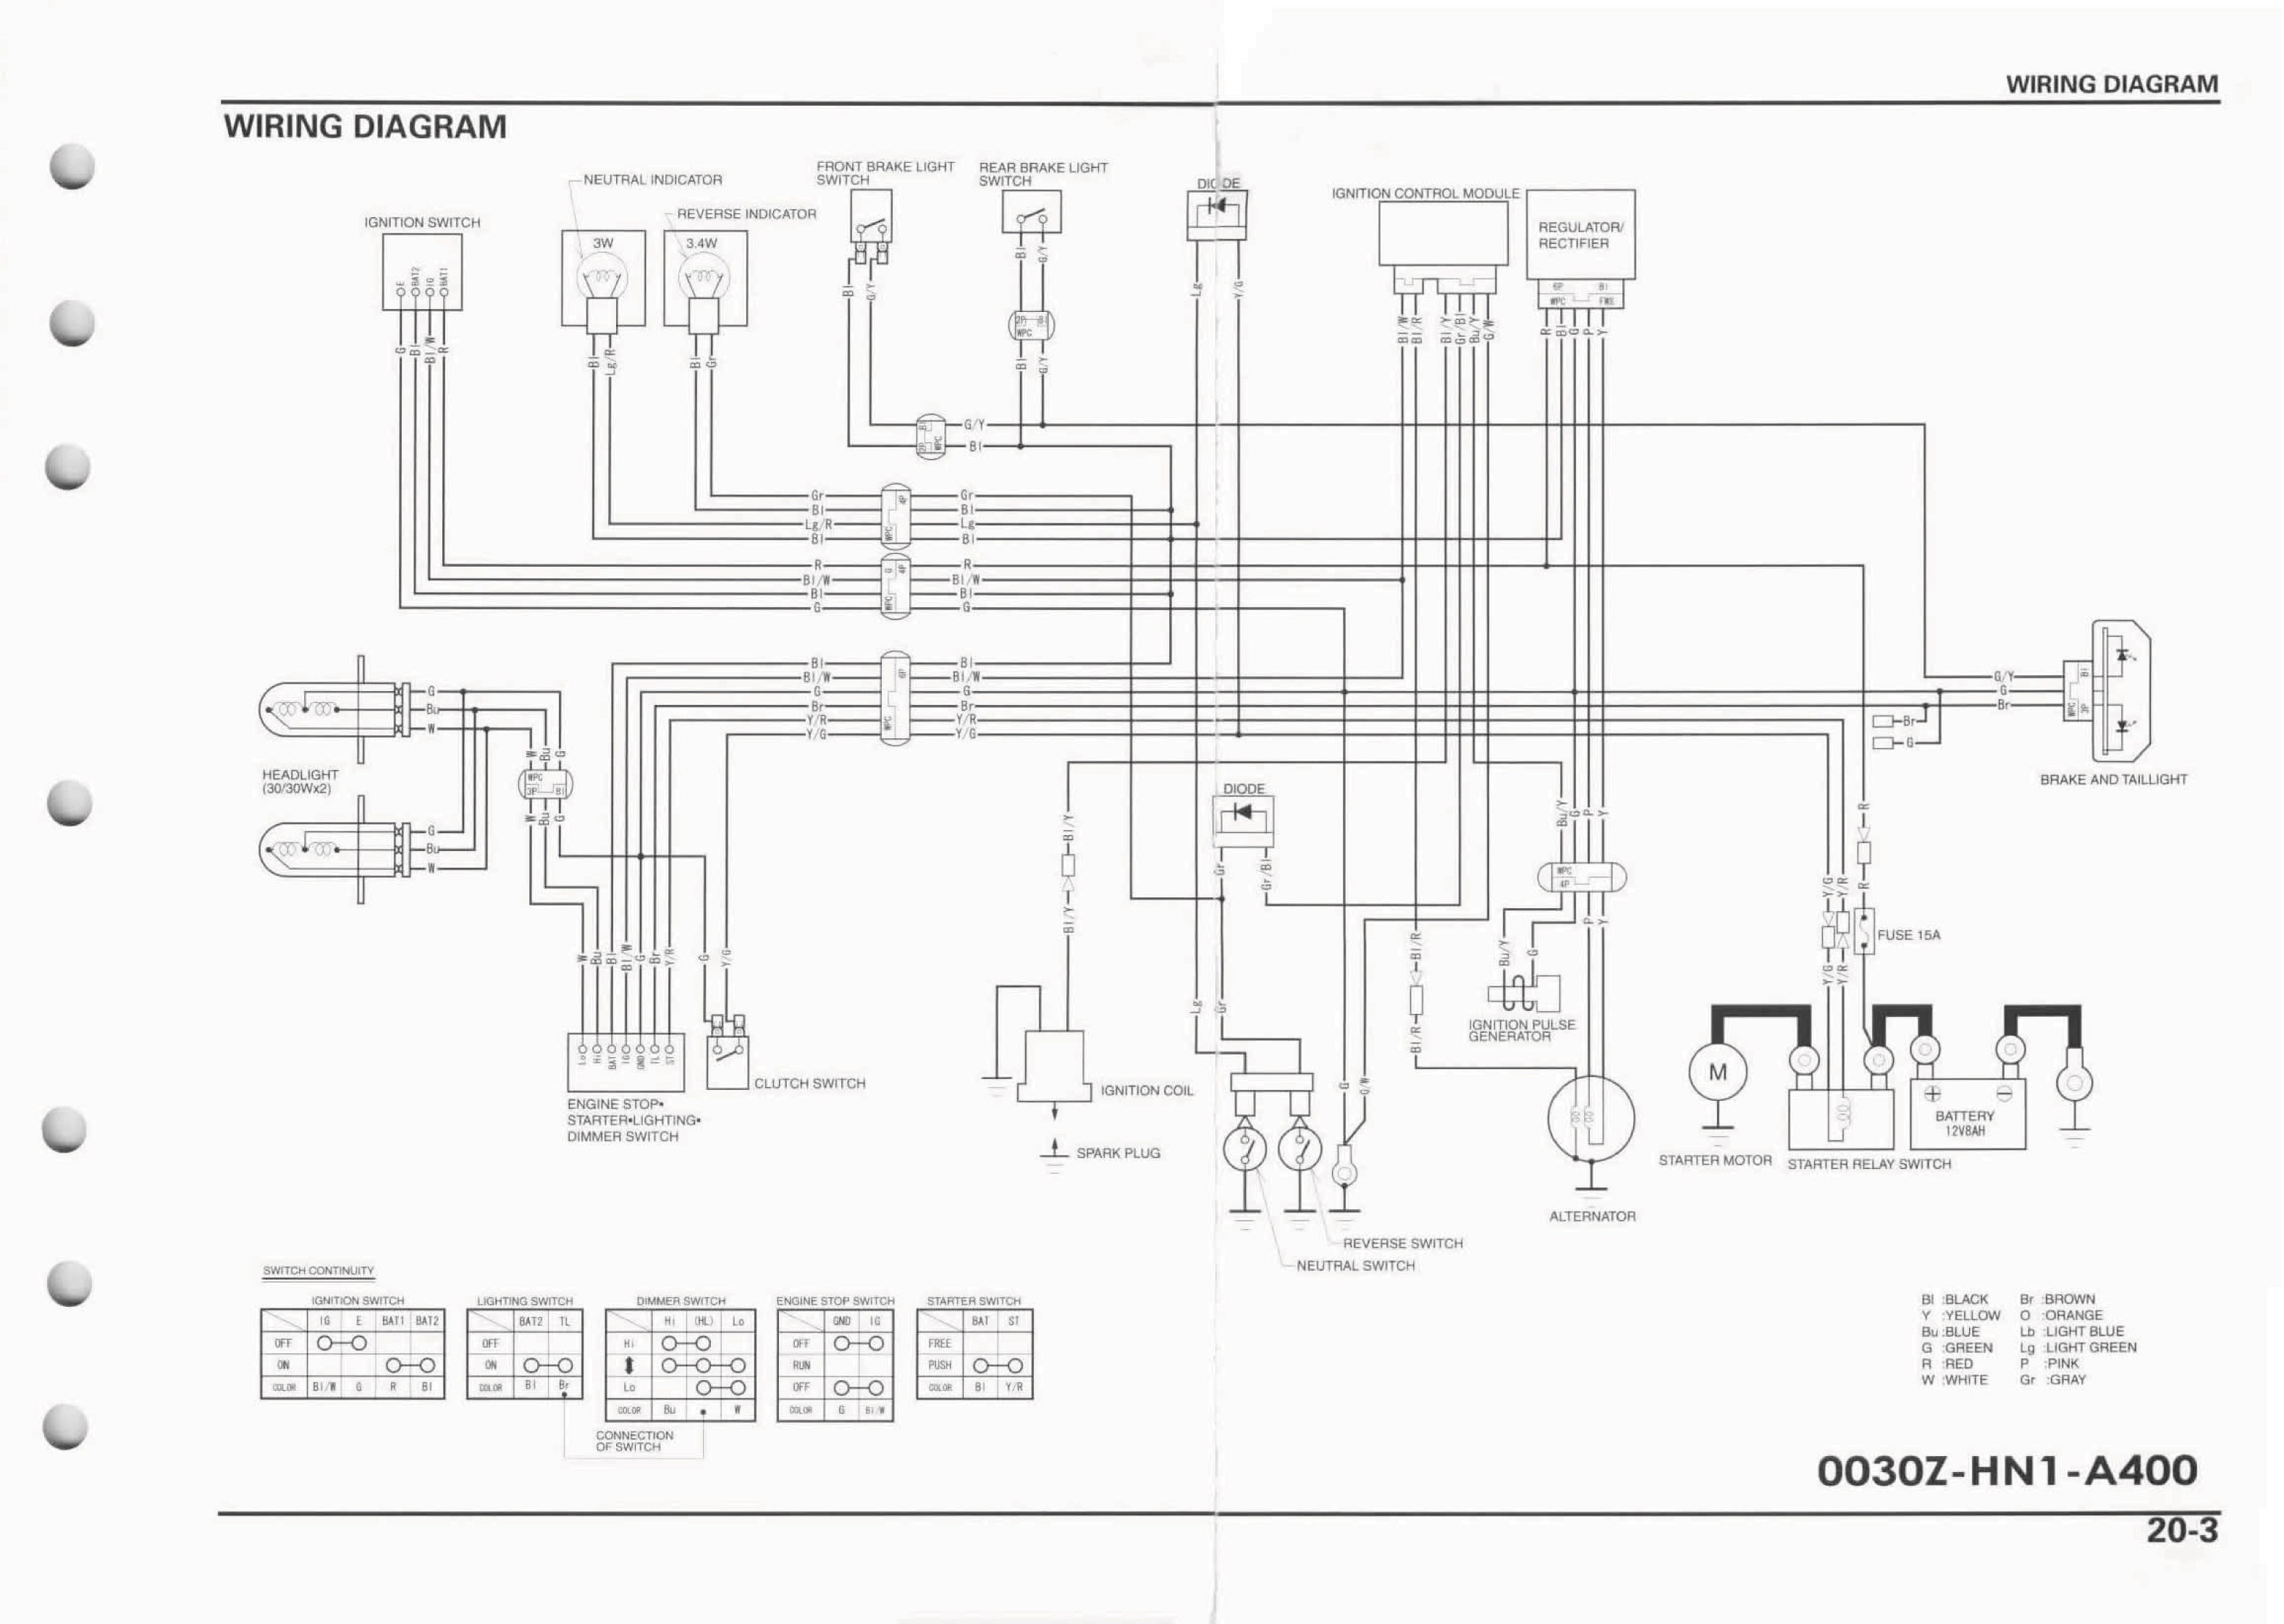 Honda Wiring Diagram